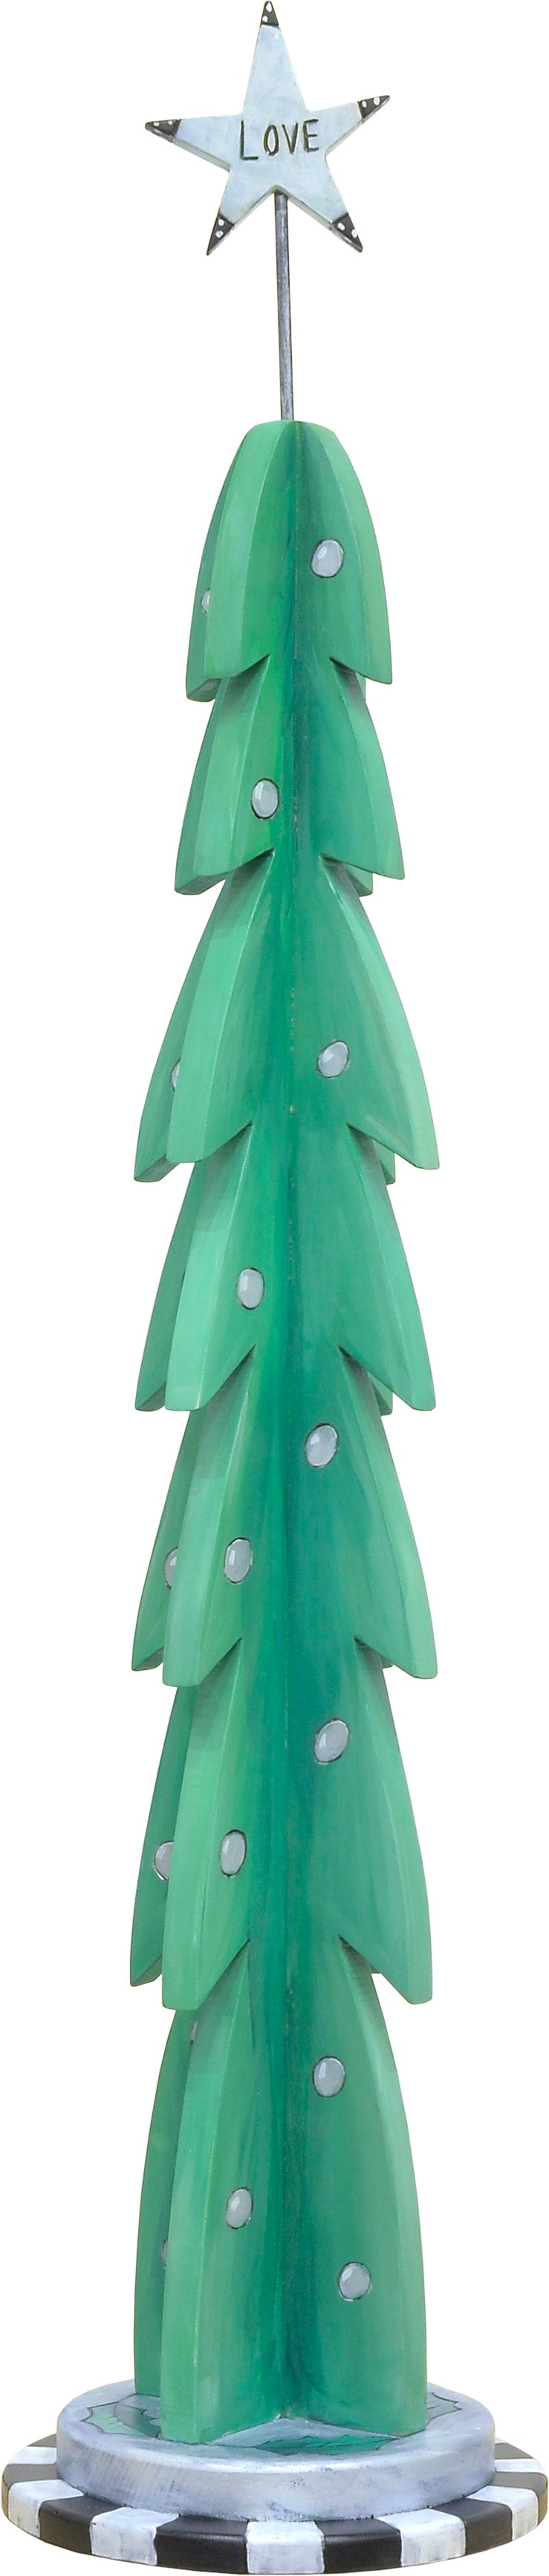 Large Christmas Tree Sculpture –  Christmas tree sculpture with shiny silver decorations